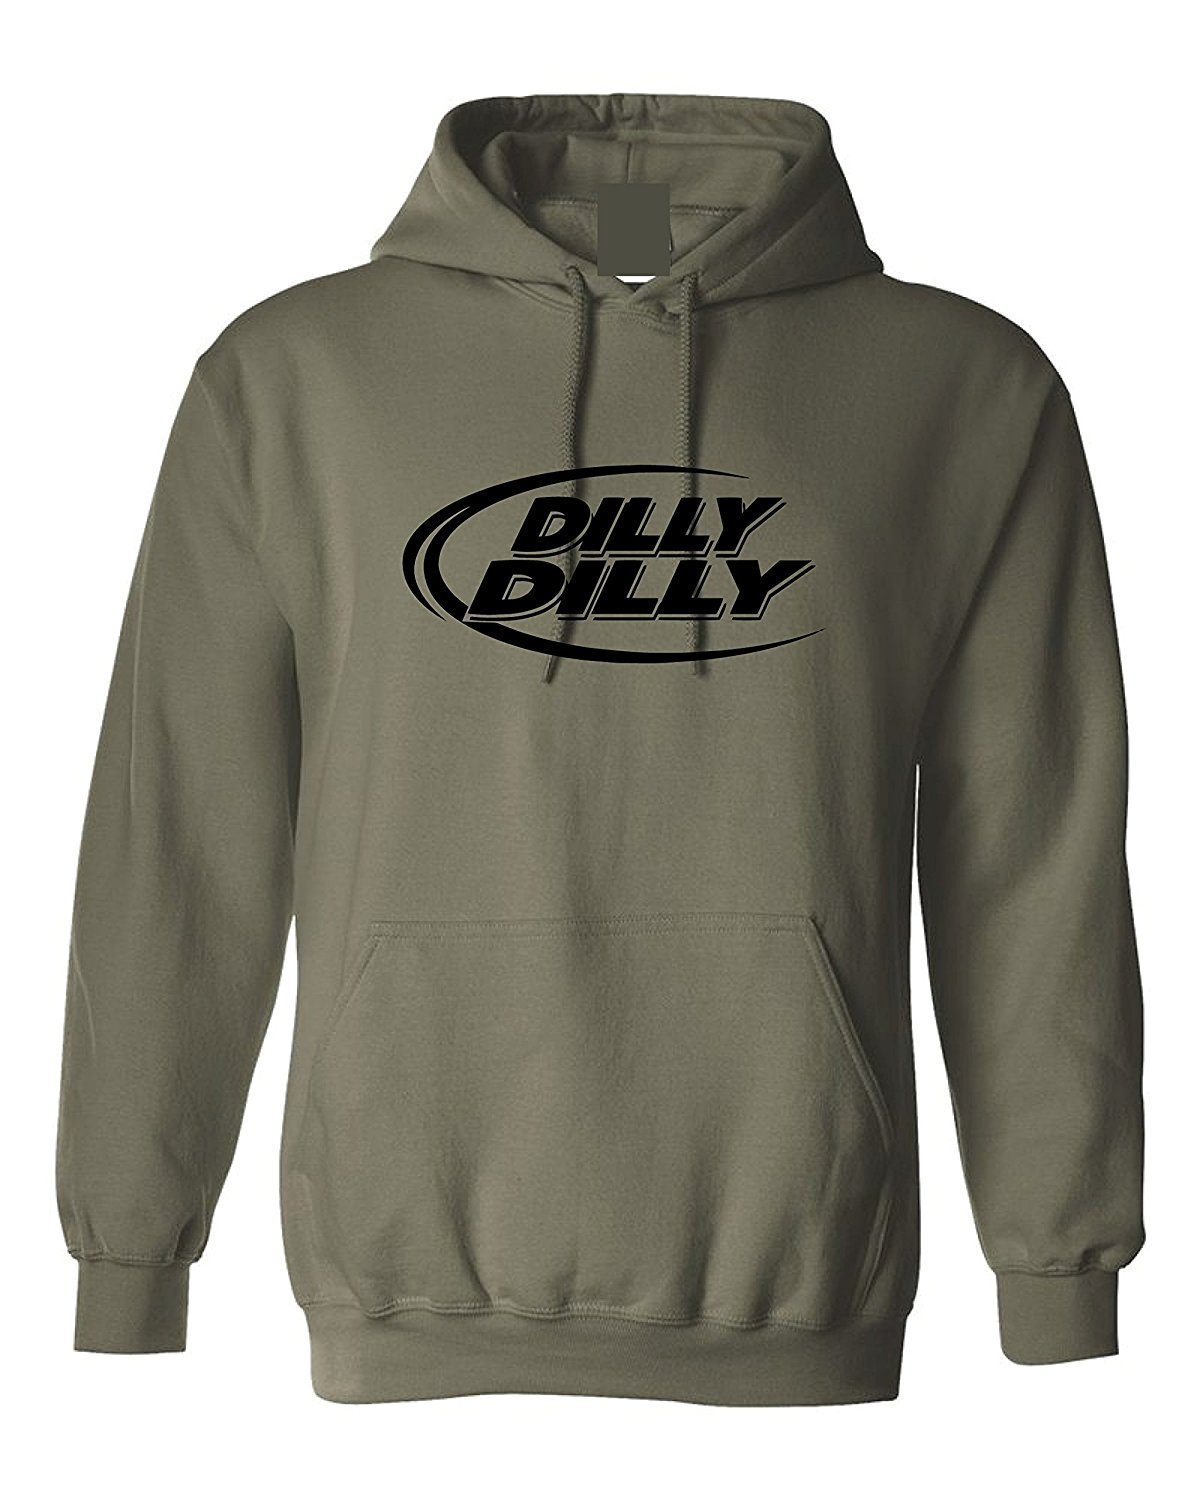 Top Selling Funny Dilly Dilly Shirts